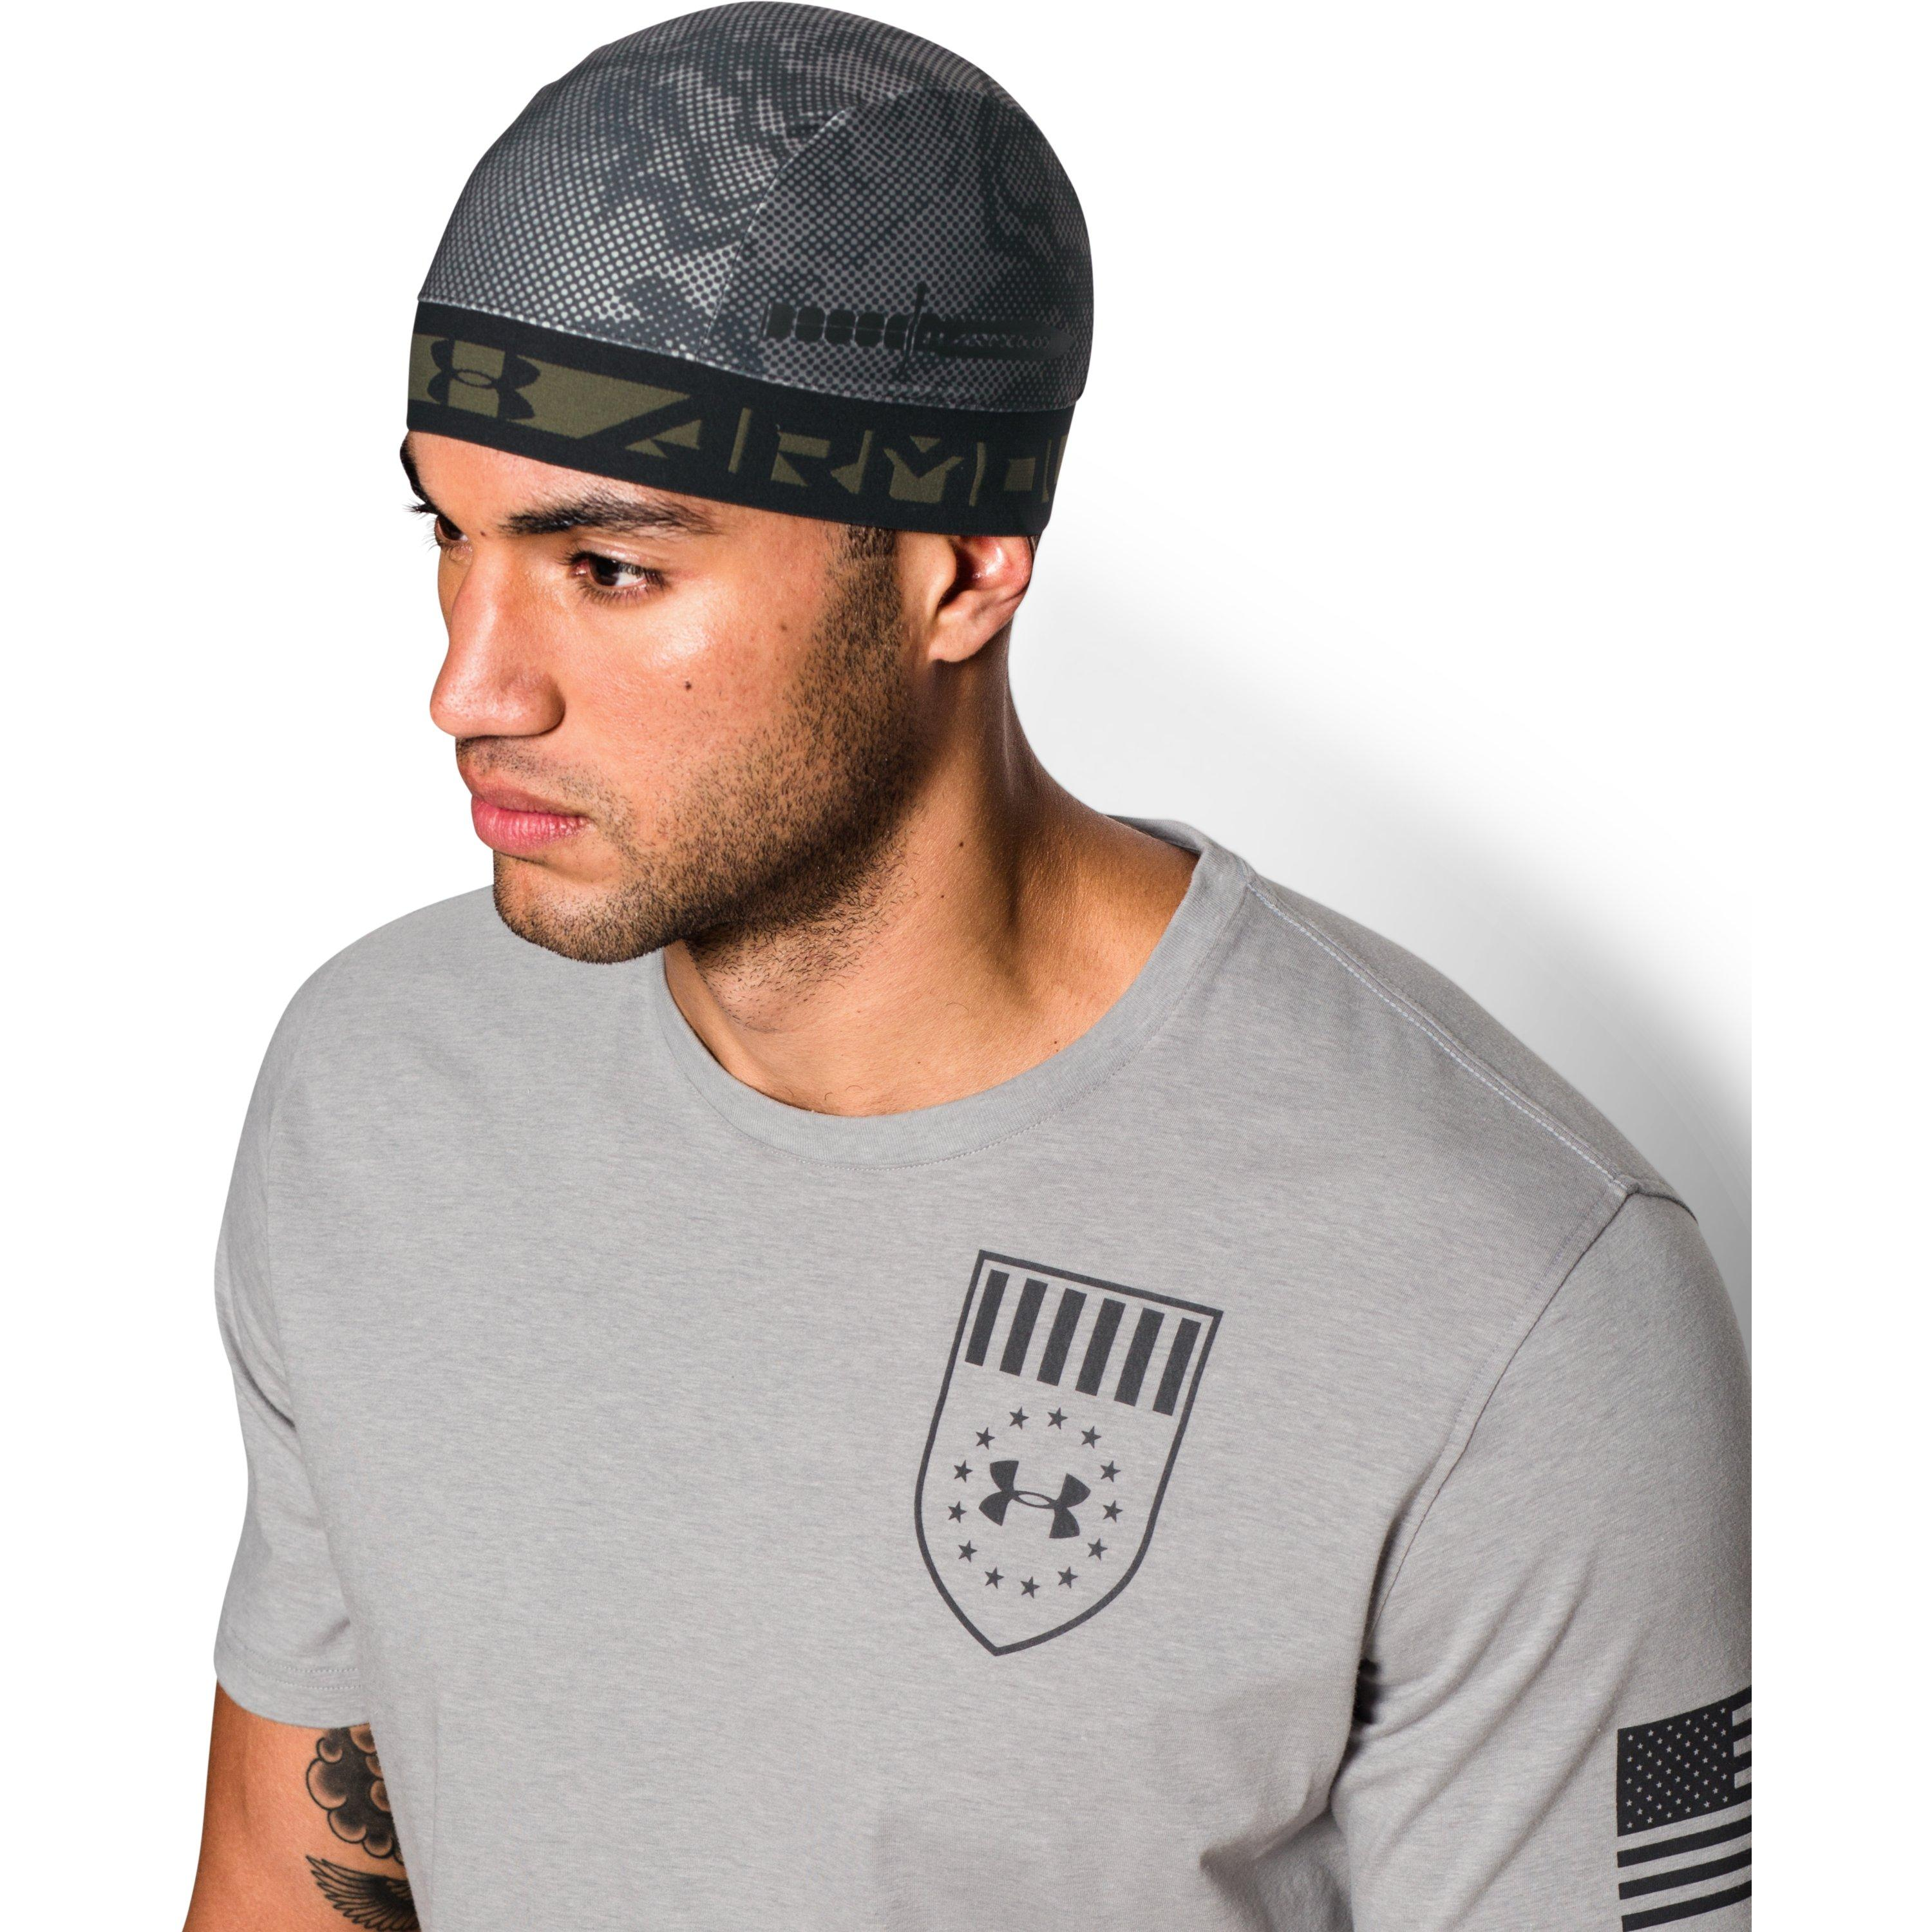 Lyst - Under Armour Men s Ua Coolswitch Camo Skull Cap in Black for Men e6a3be115d3